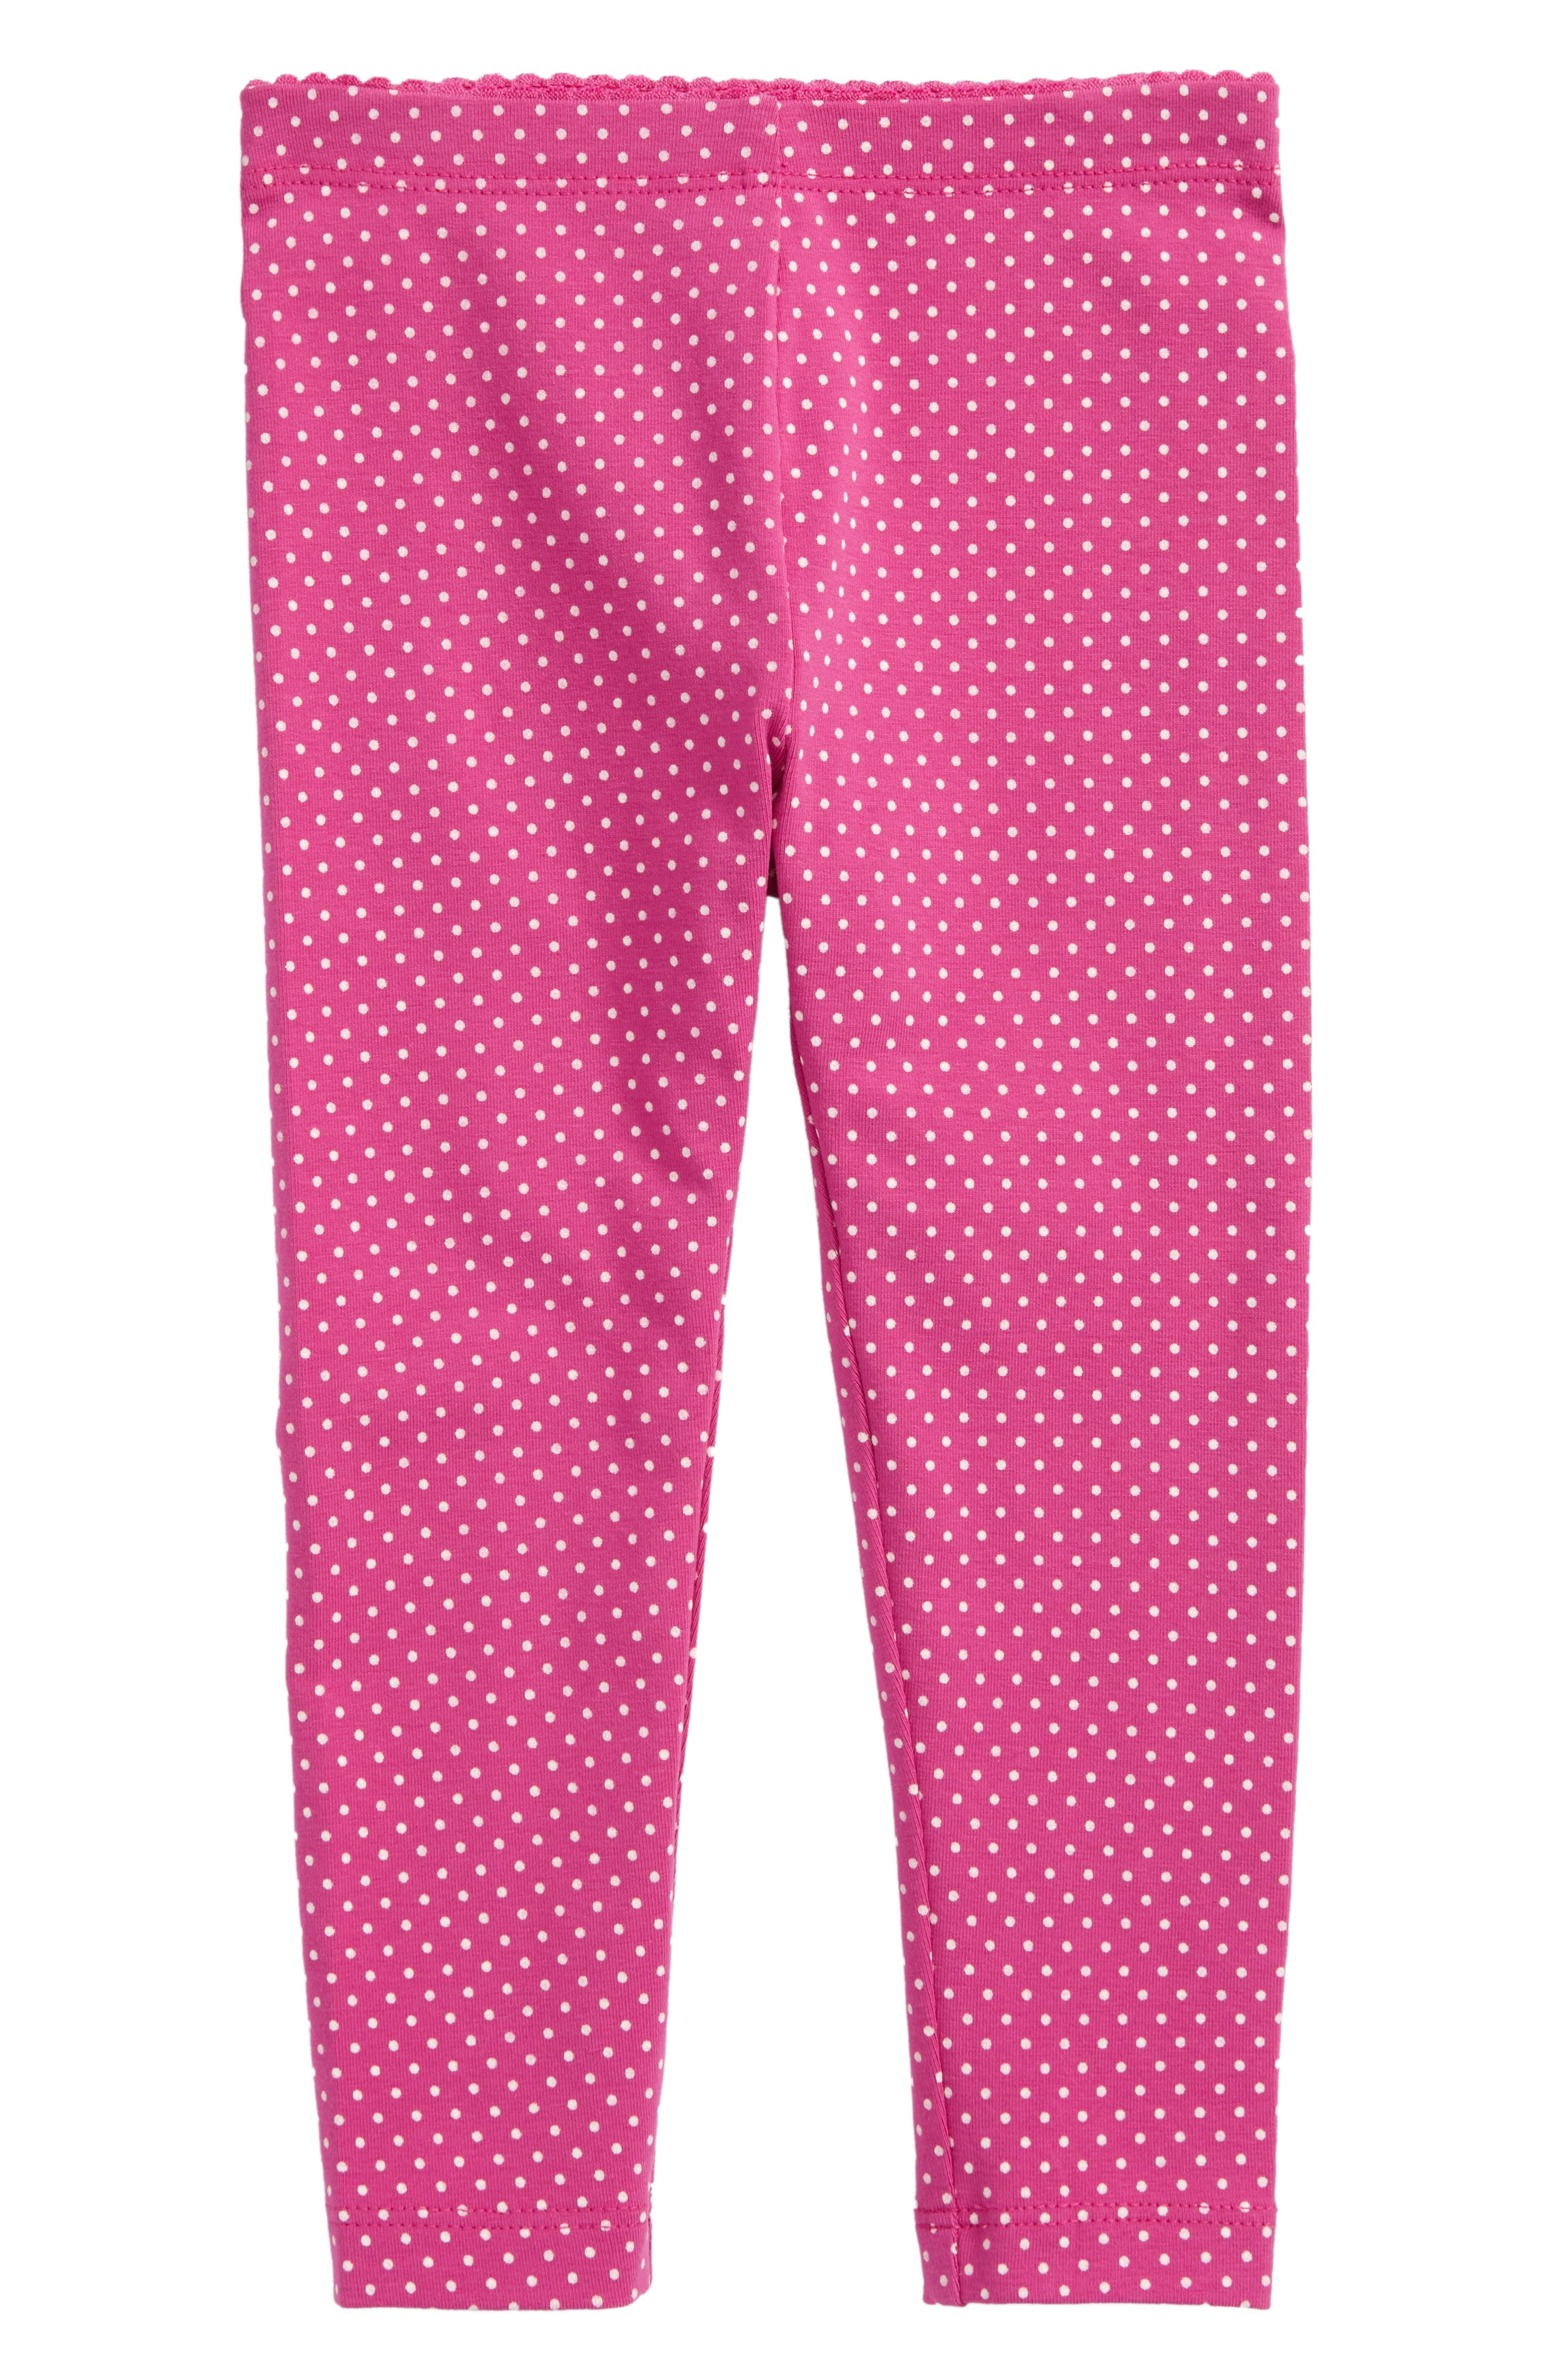 Pin Dot Leggings,                             Main thumbnail 4, color,